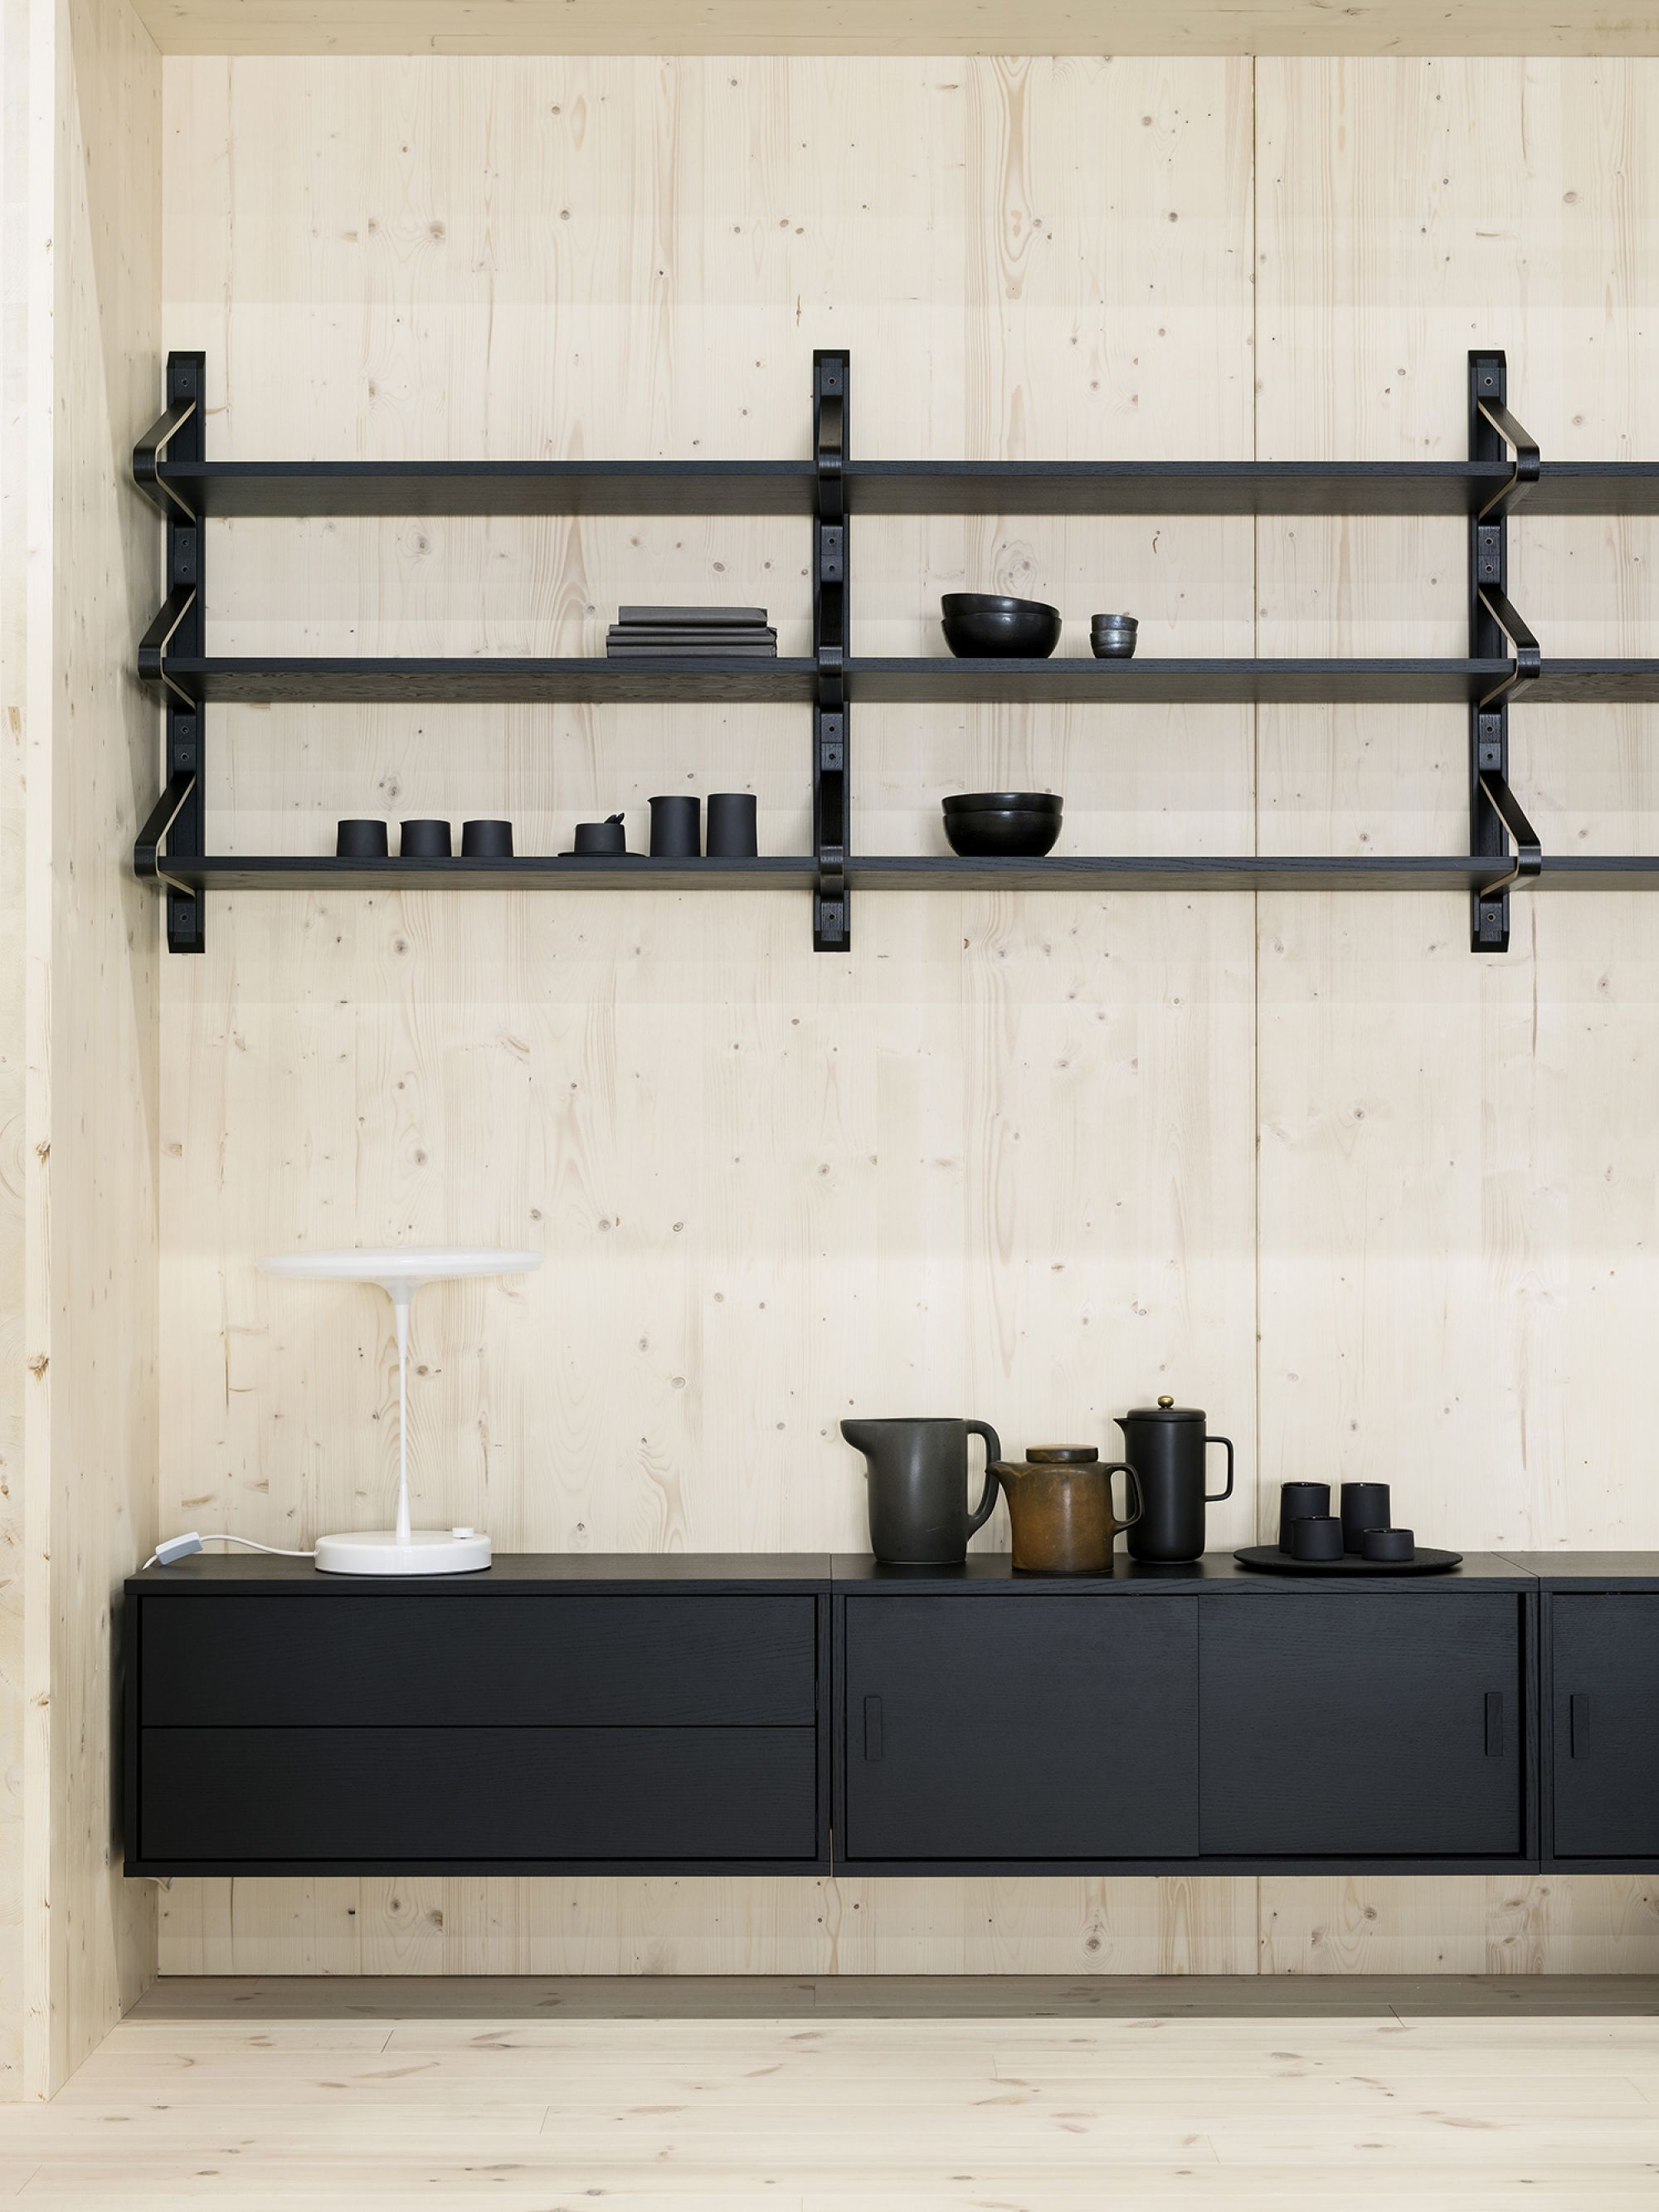 Black shelf system in wooden interior